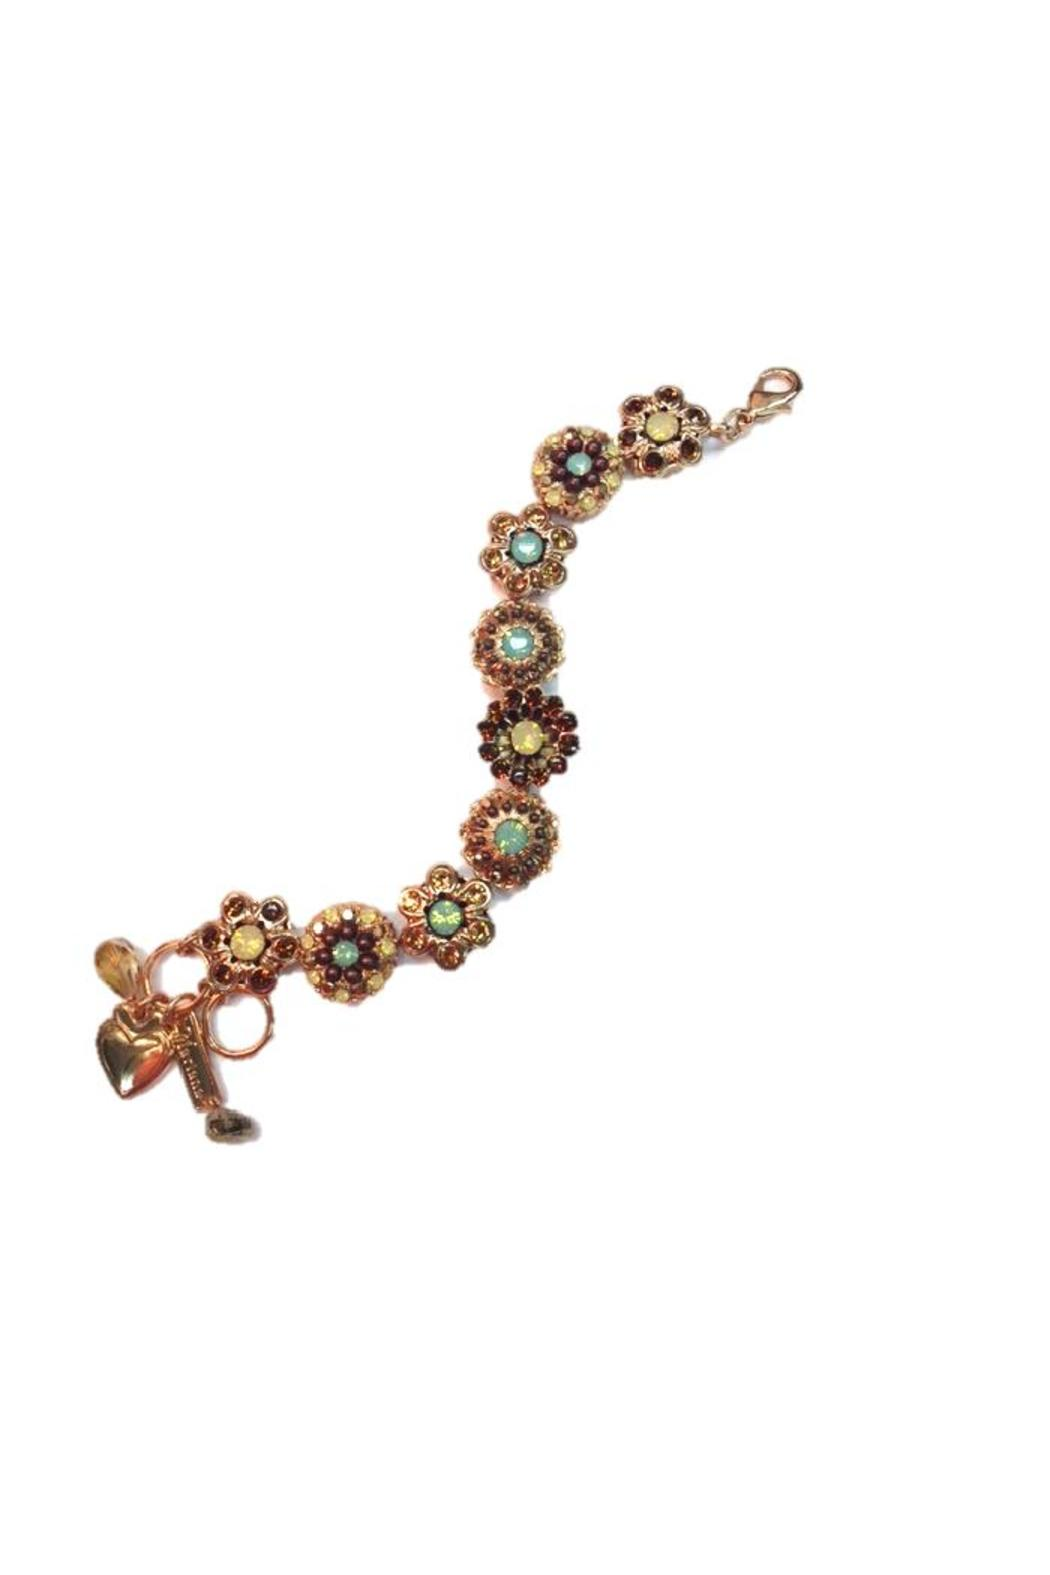 mariana rosegold swarovski bracelet from ohio by hartwell. Black Bedroom Furniture Sets. Home Design Ideas